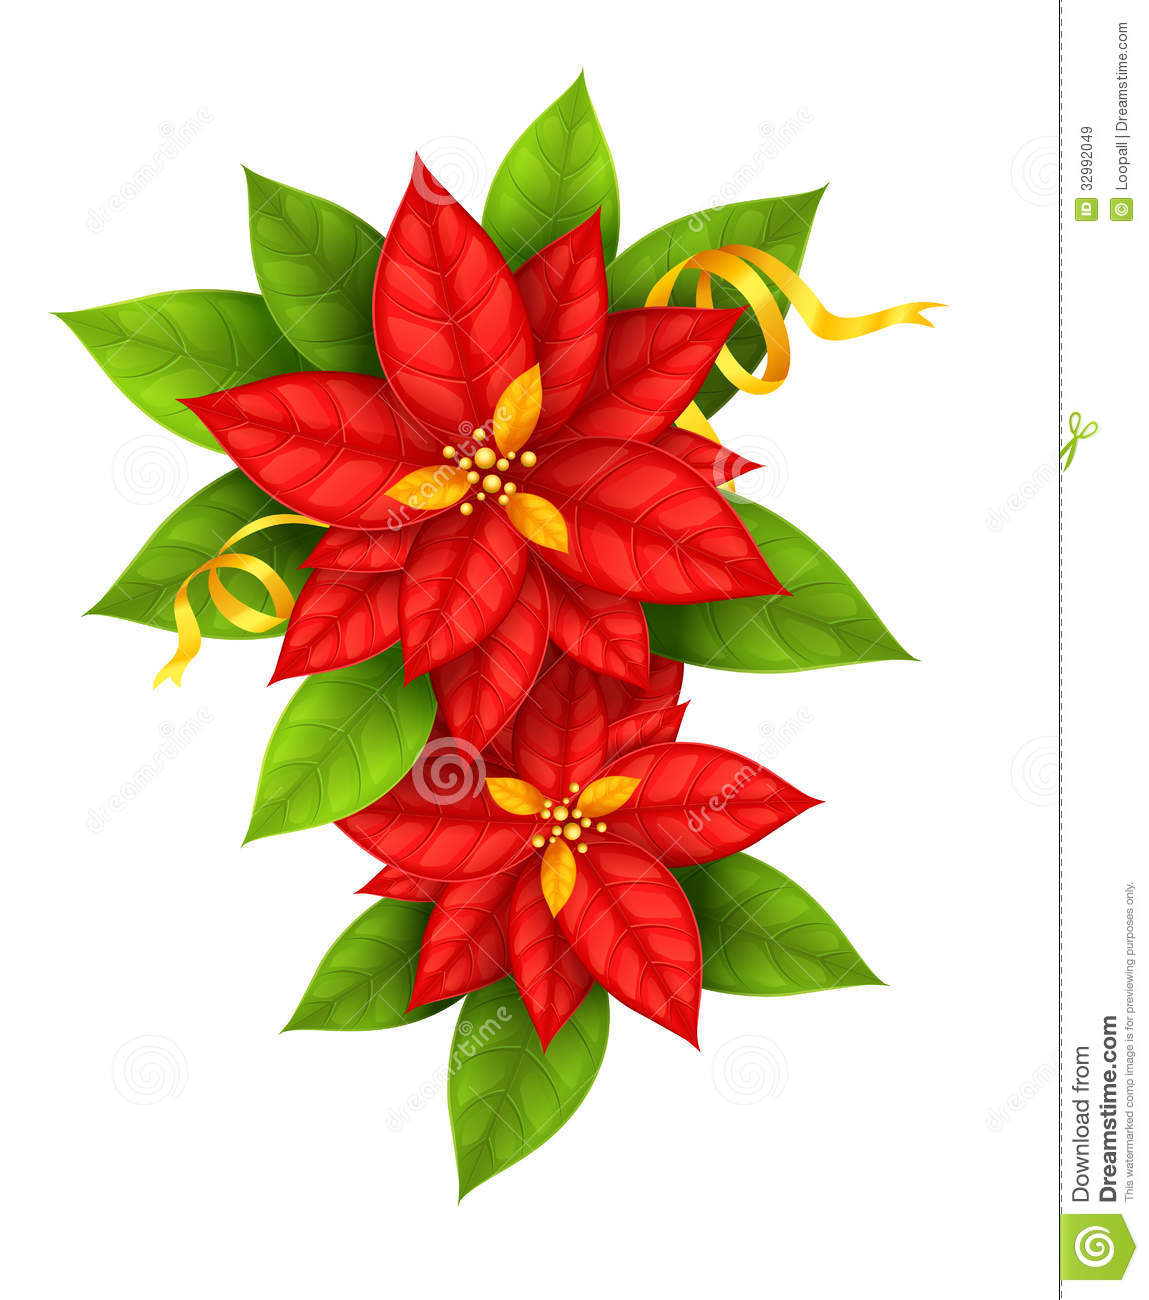 Christmas Star Flowers Poinsettia With Gold Ribbon Royalty Free Stock ...: www.dreamstime.com/royalty-free-stock-images-christmas-star-flowers...